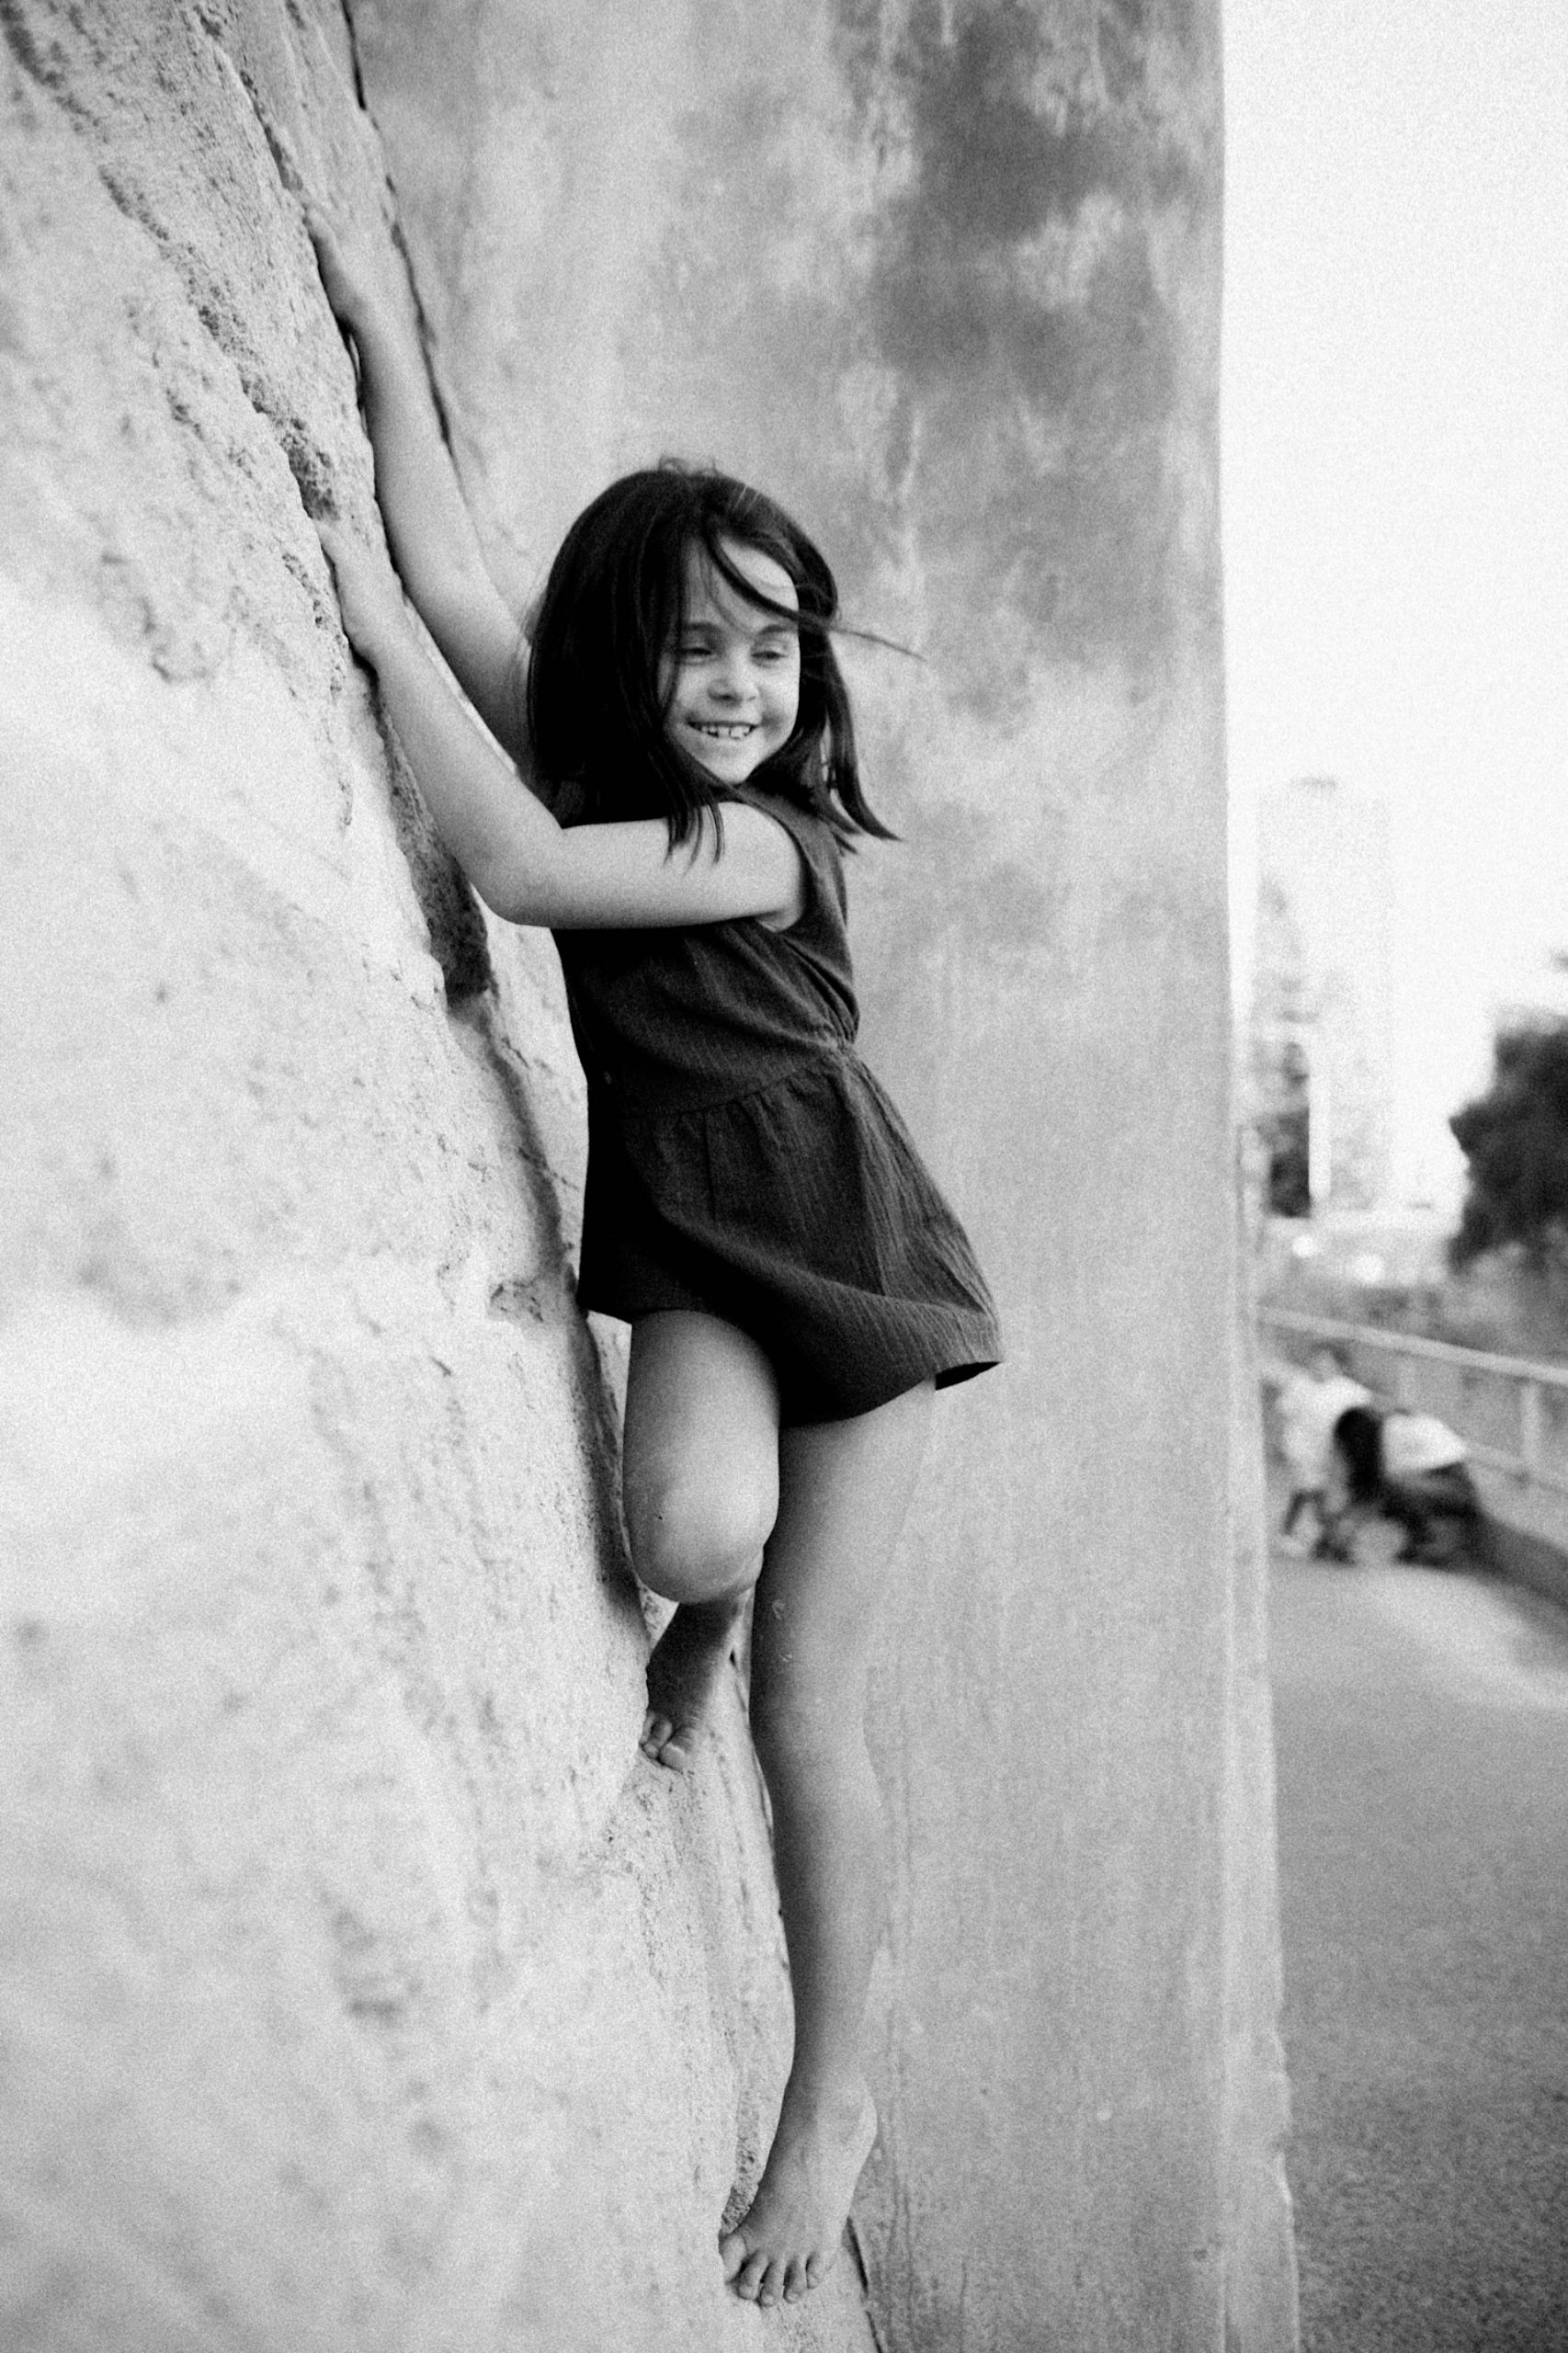 A black and white natural family photo of a girl climbing up an angled limestone wall.